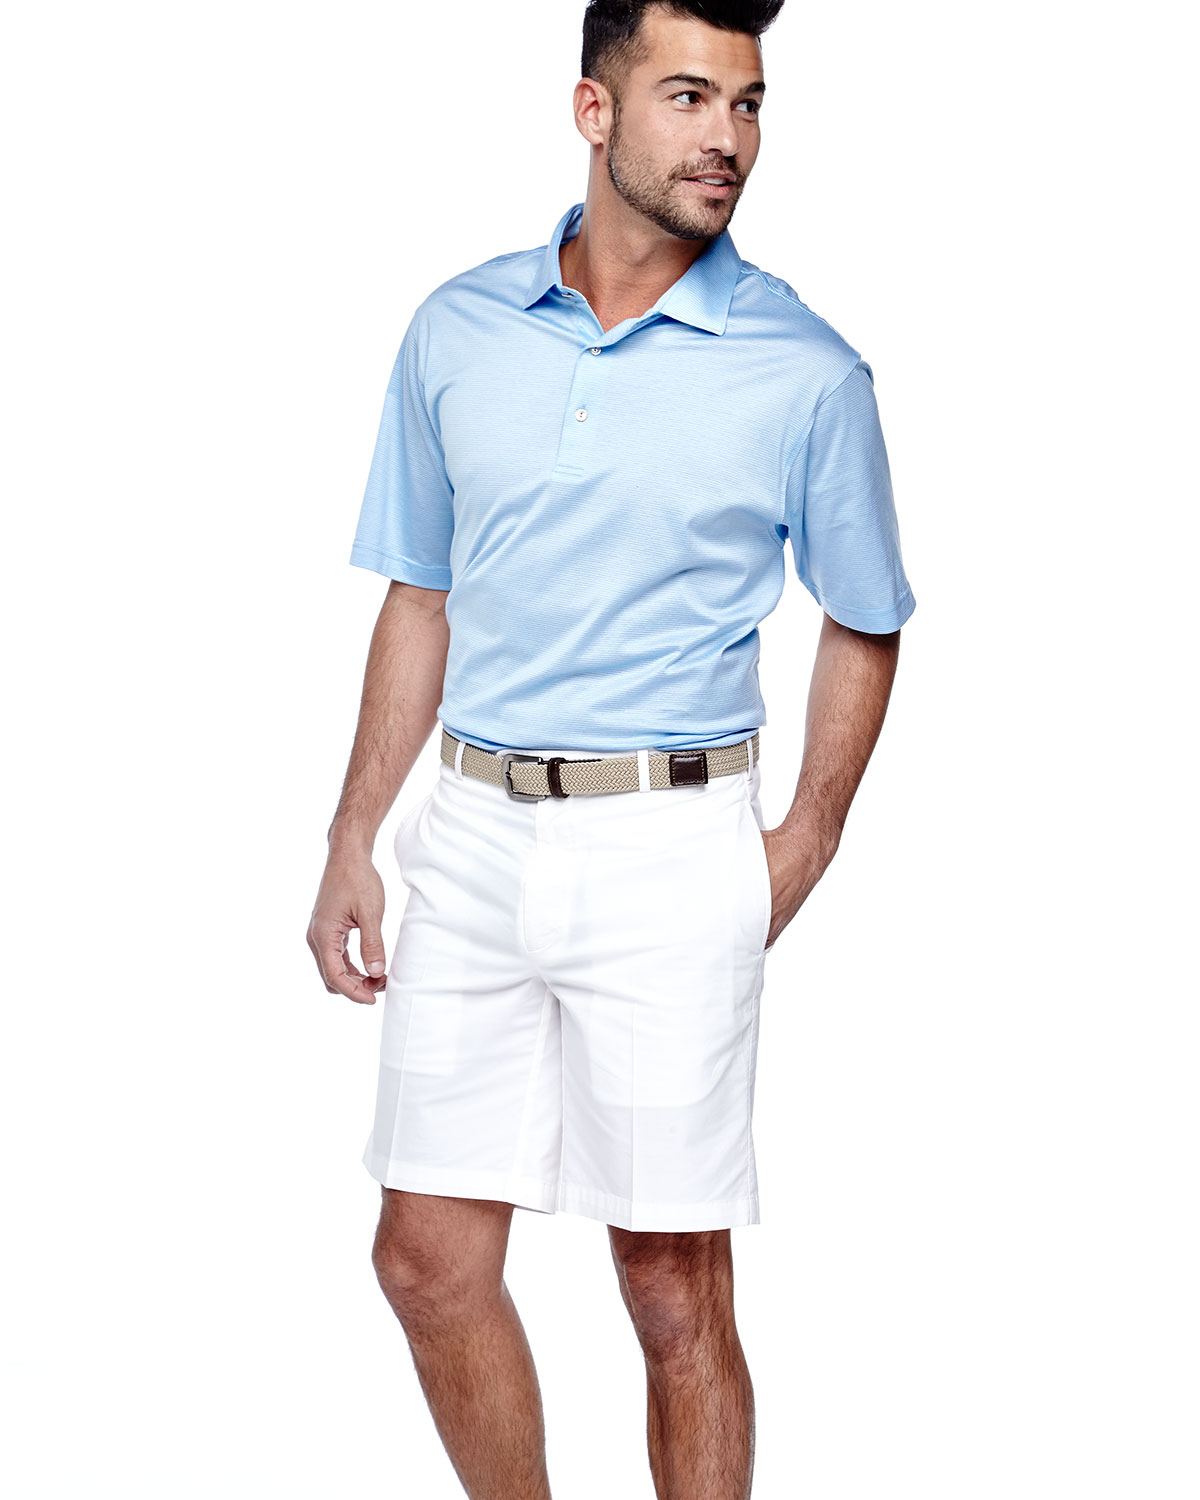 Peter millar relaxed solid twill shorts white in white lyst for Peter millar women s golf shirts